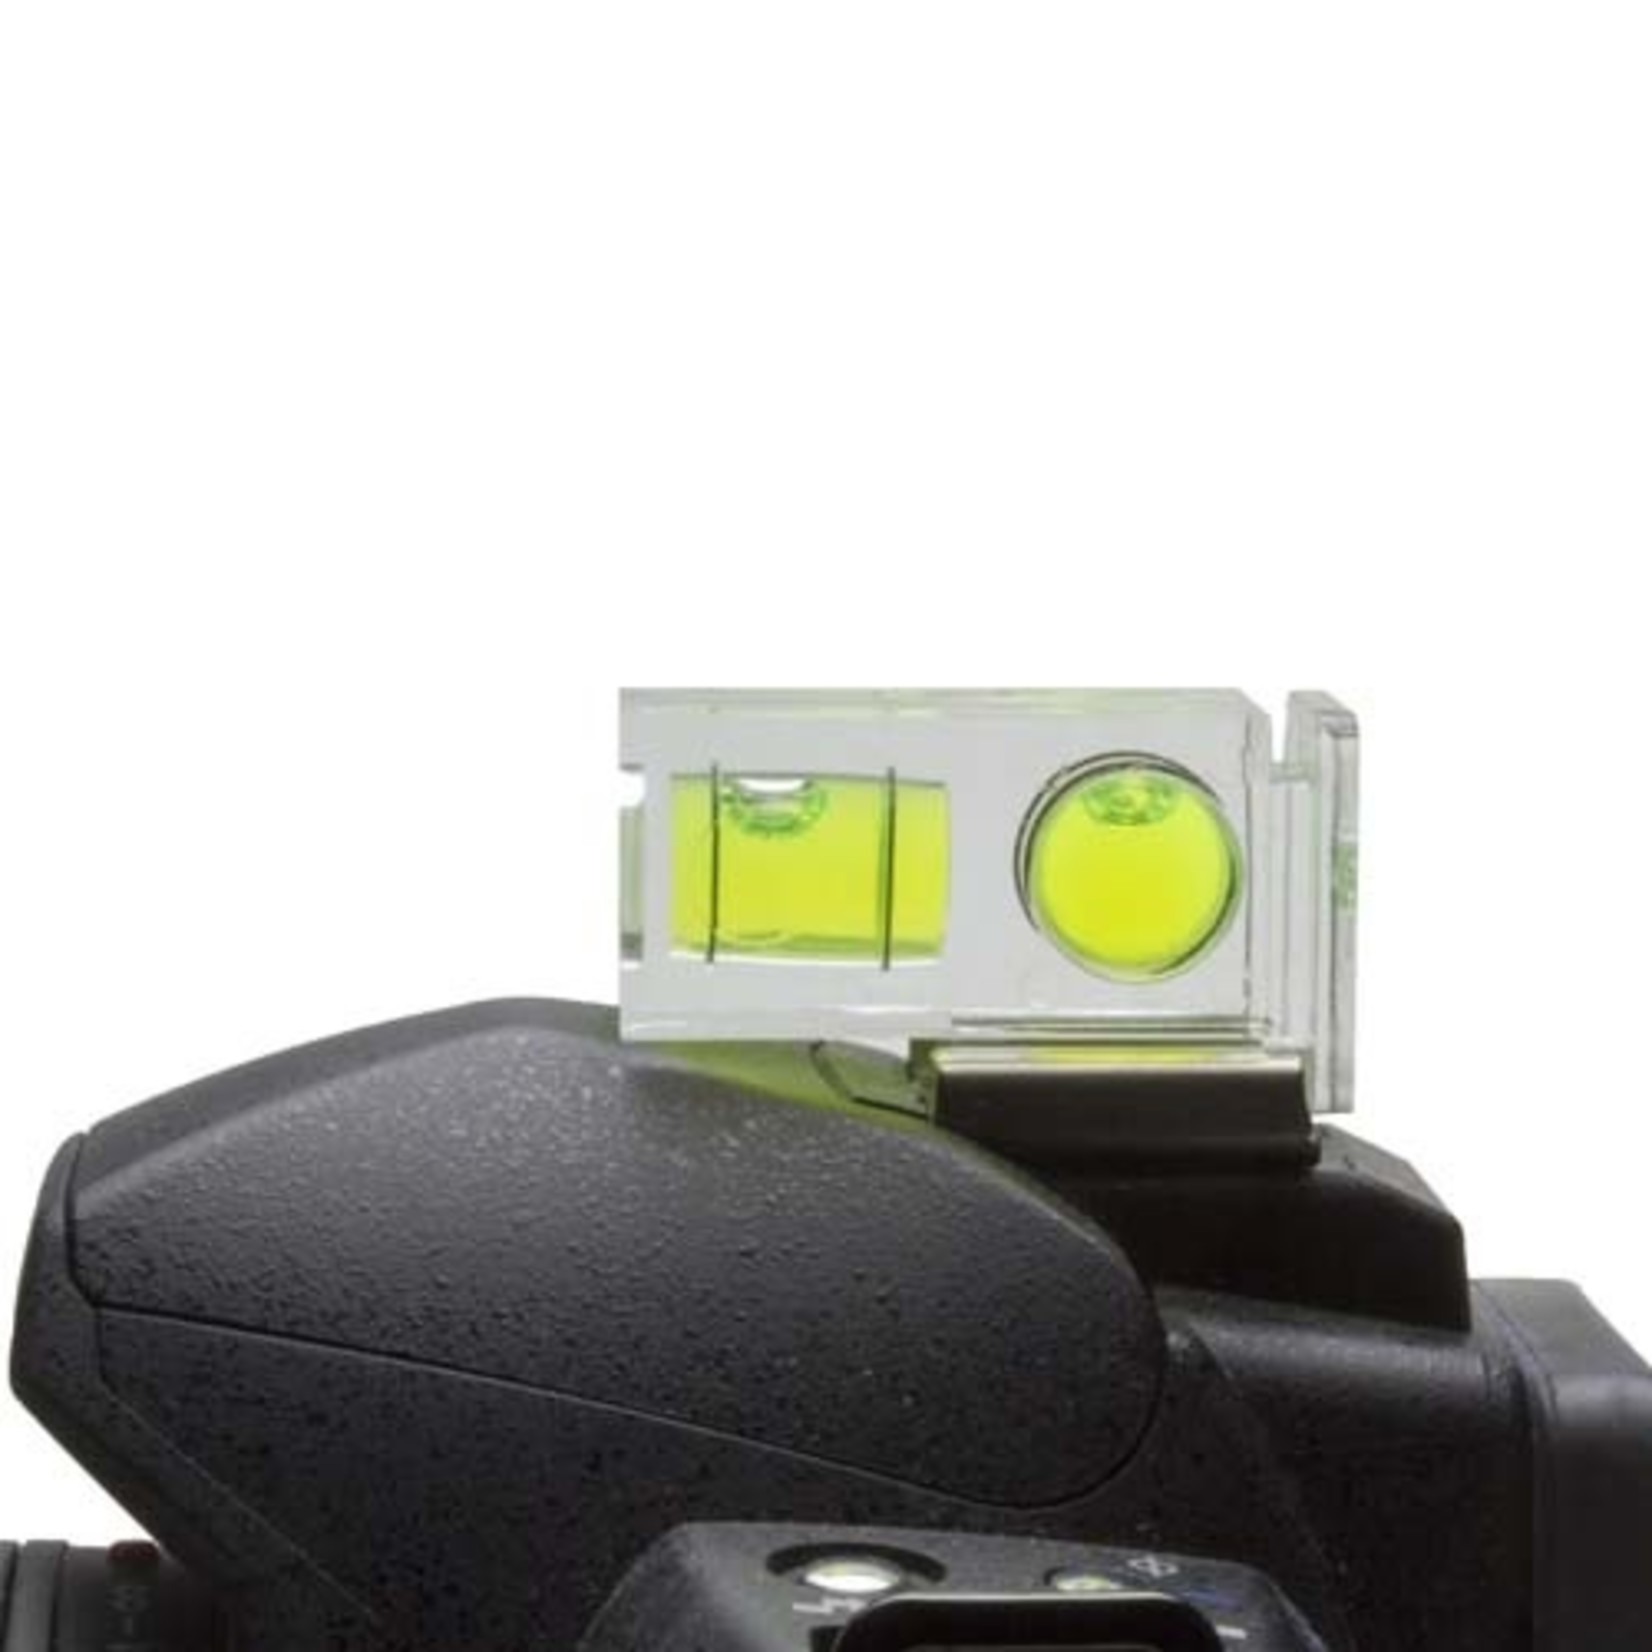 ProMaster Bubble Level - 2-Axis